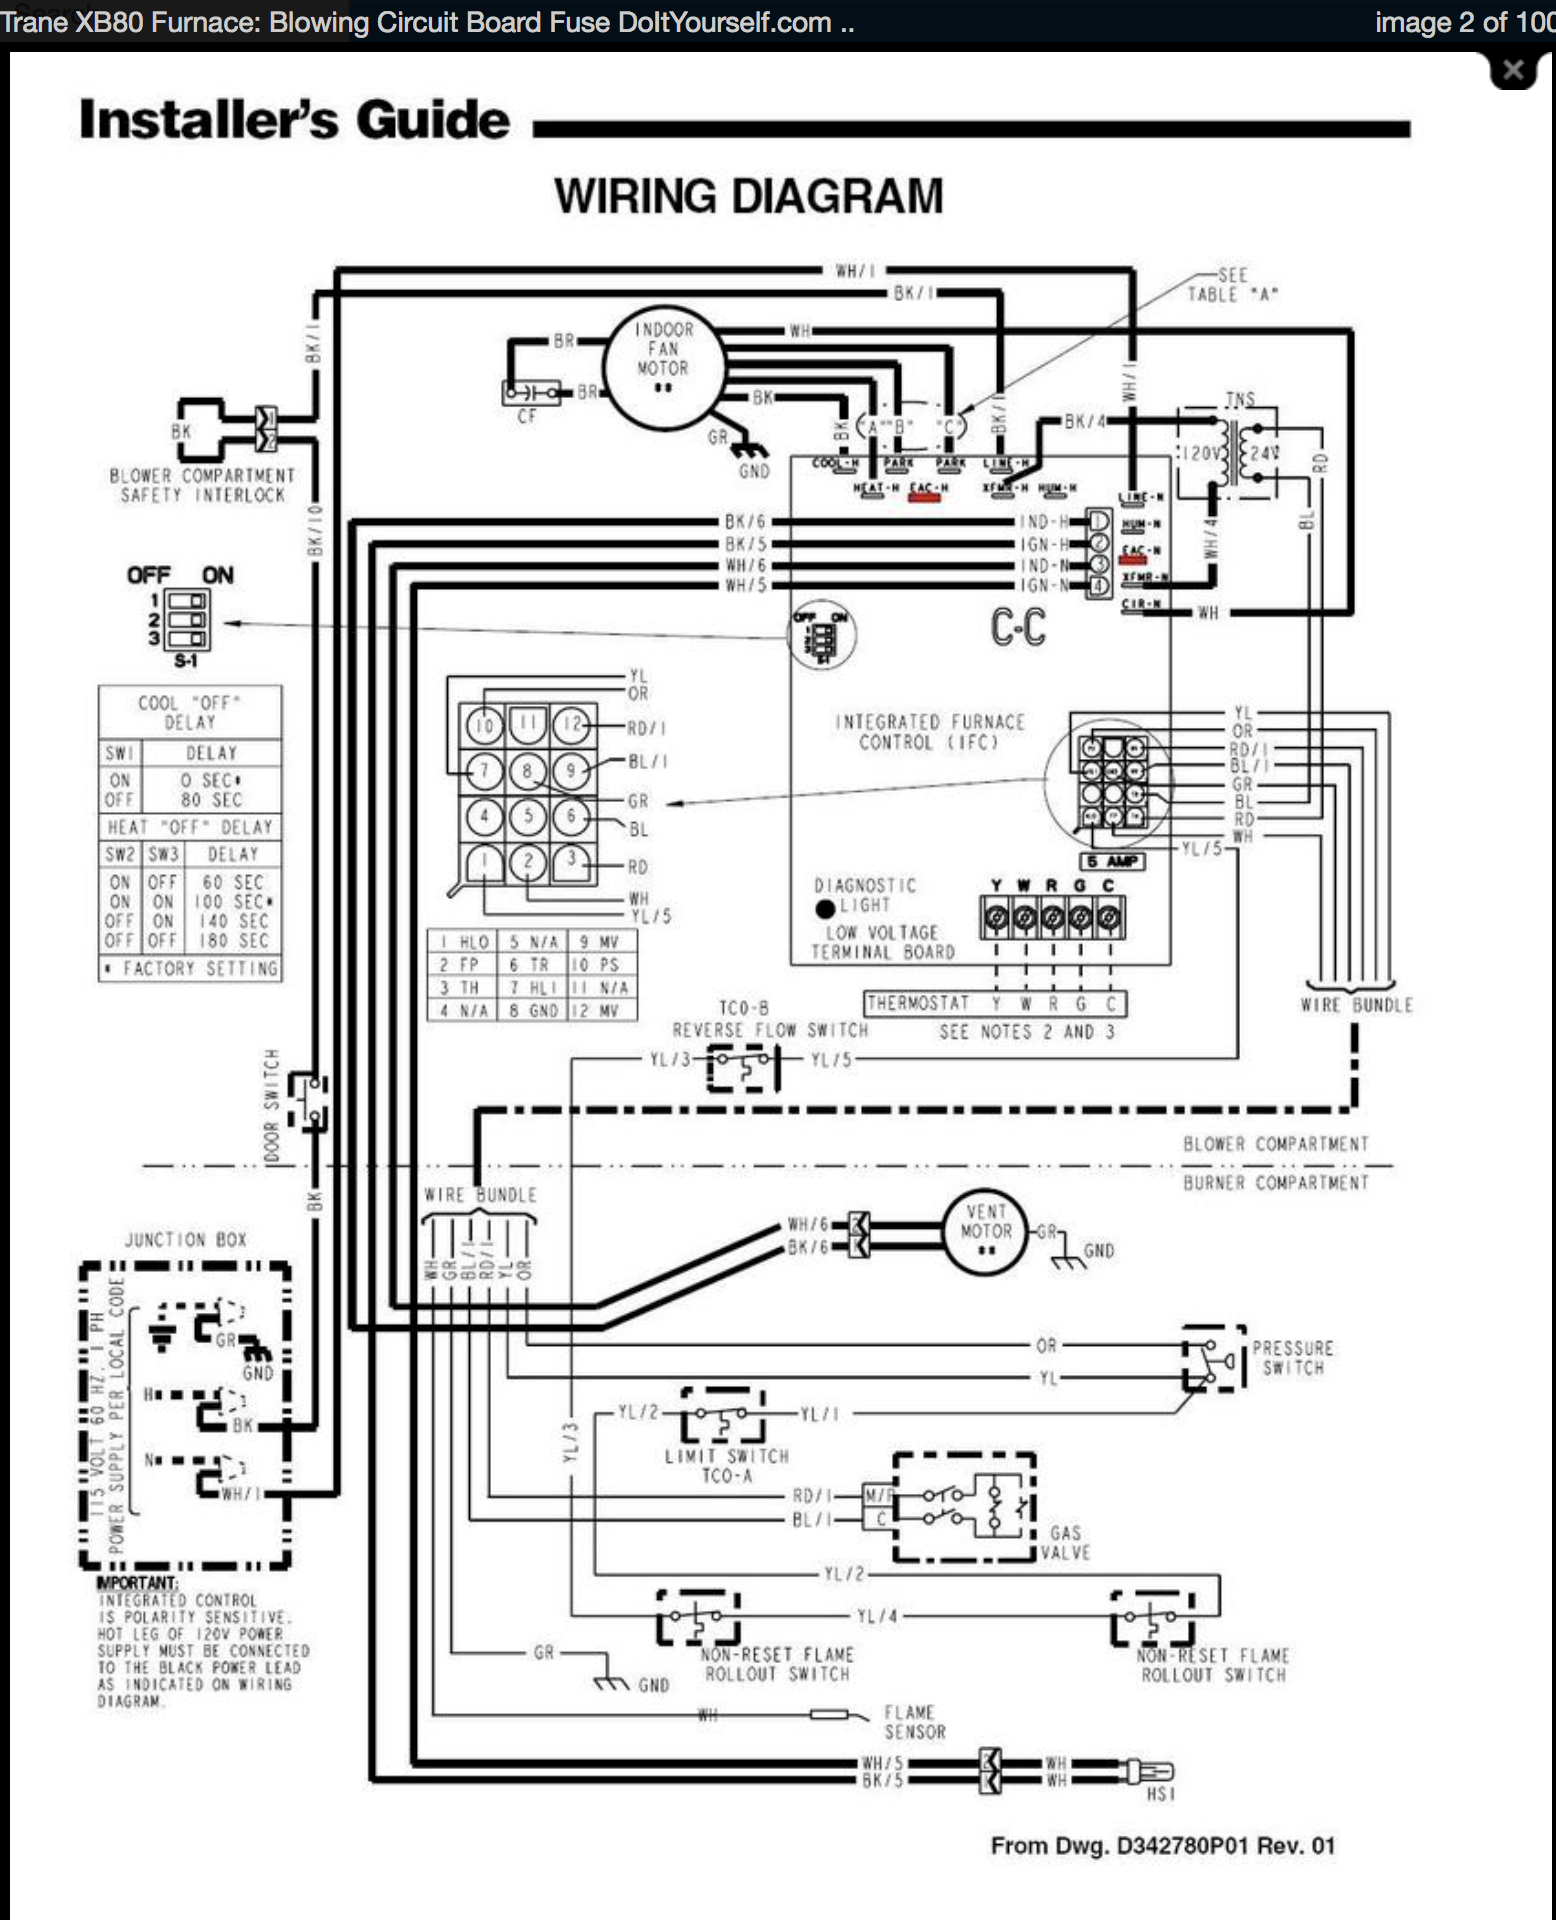 trane_xb80_diagram  Phase Hvac Compressor Wiring Diagram on hvac motor wiring diagram, hvac pump wiring diagram, hvac low voltage wiring diagram, hvac blower wiring diagram, hvac compressor wiring diagram,